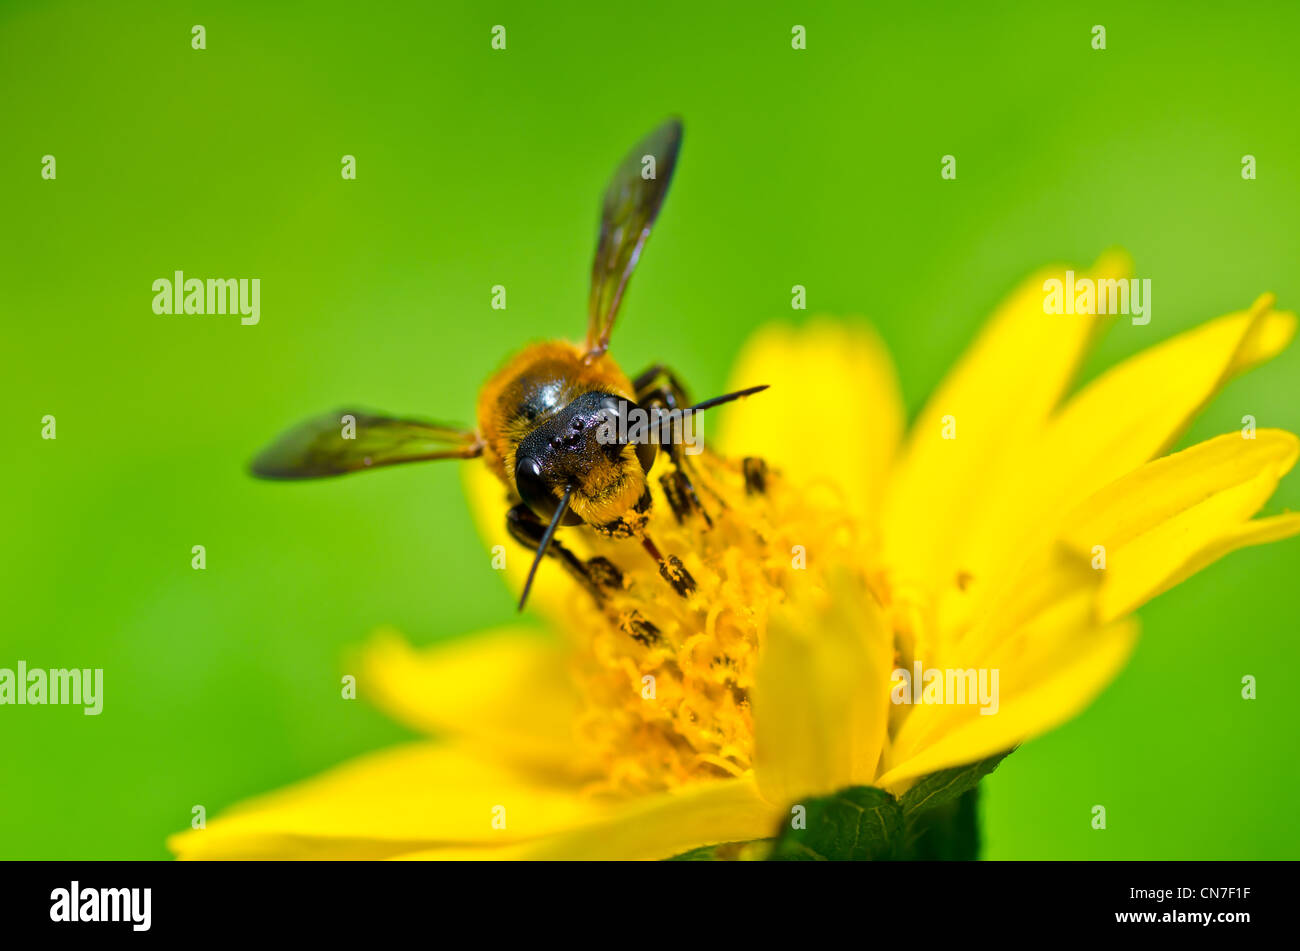 bee in green nature or in the garden - Stock Image